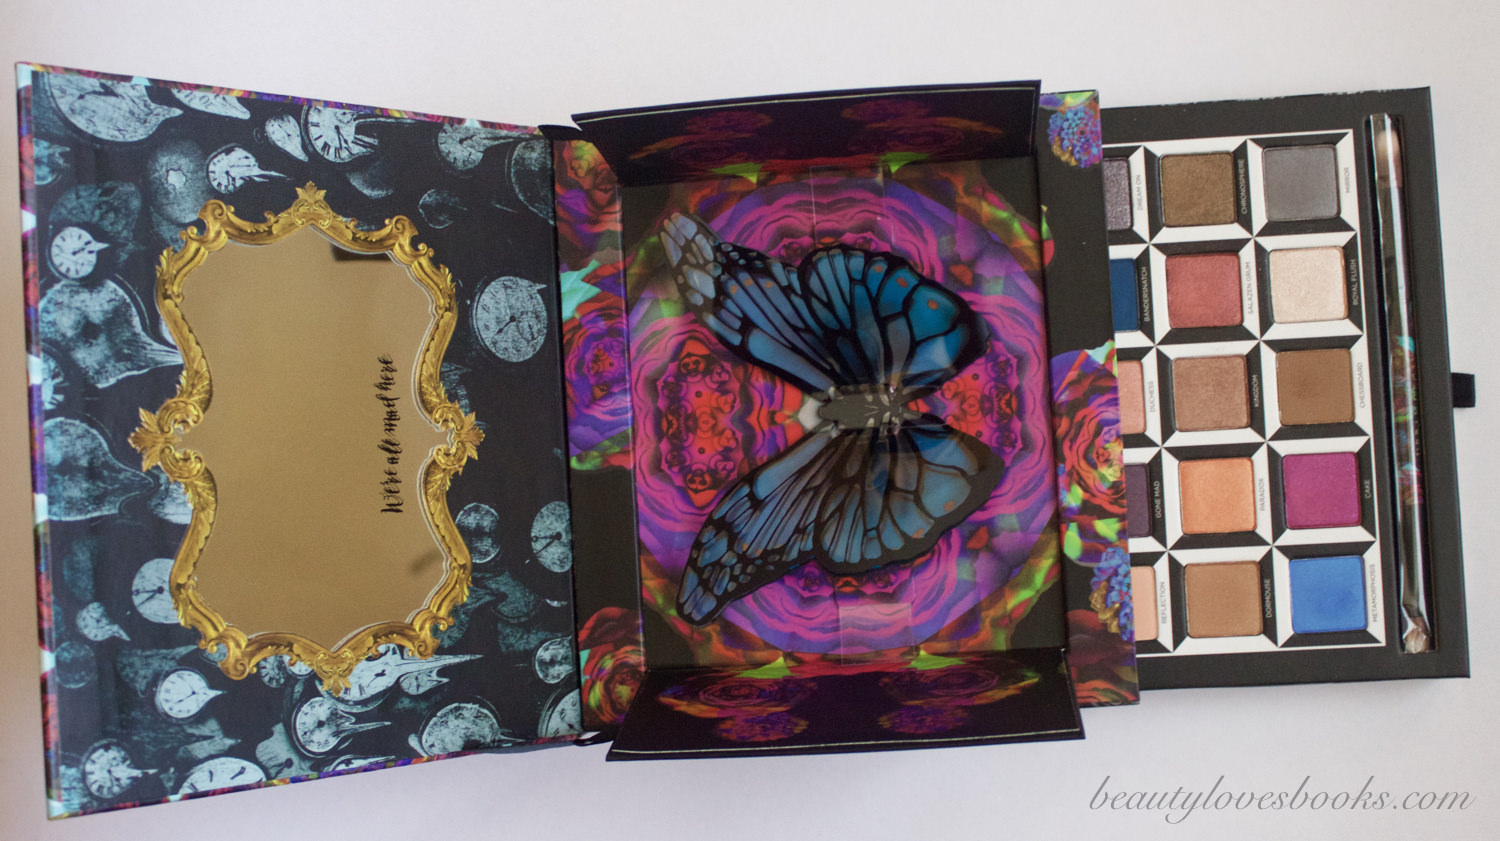 Urban Decay X Alice through the looking glass eyeshadow palette